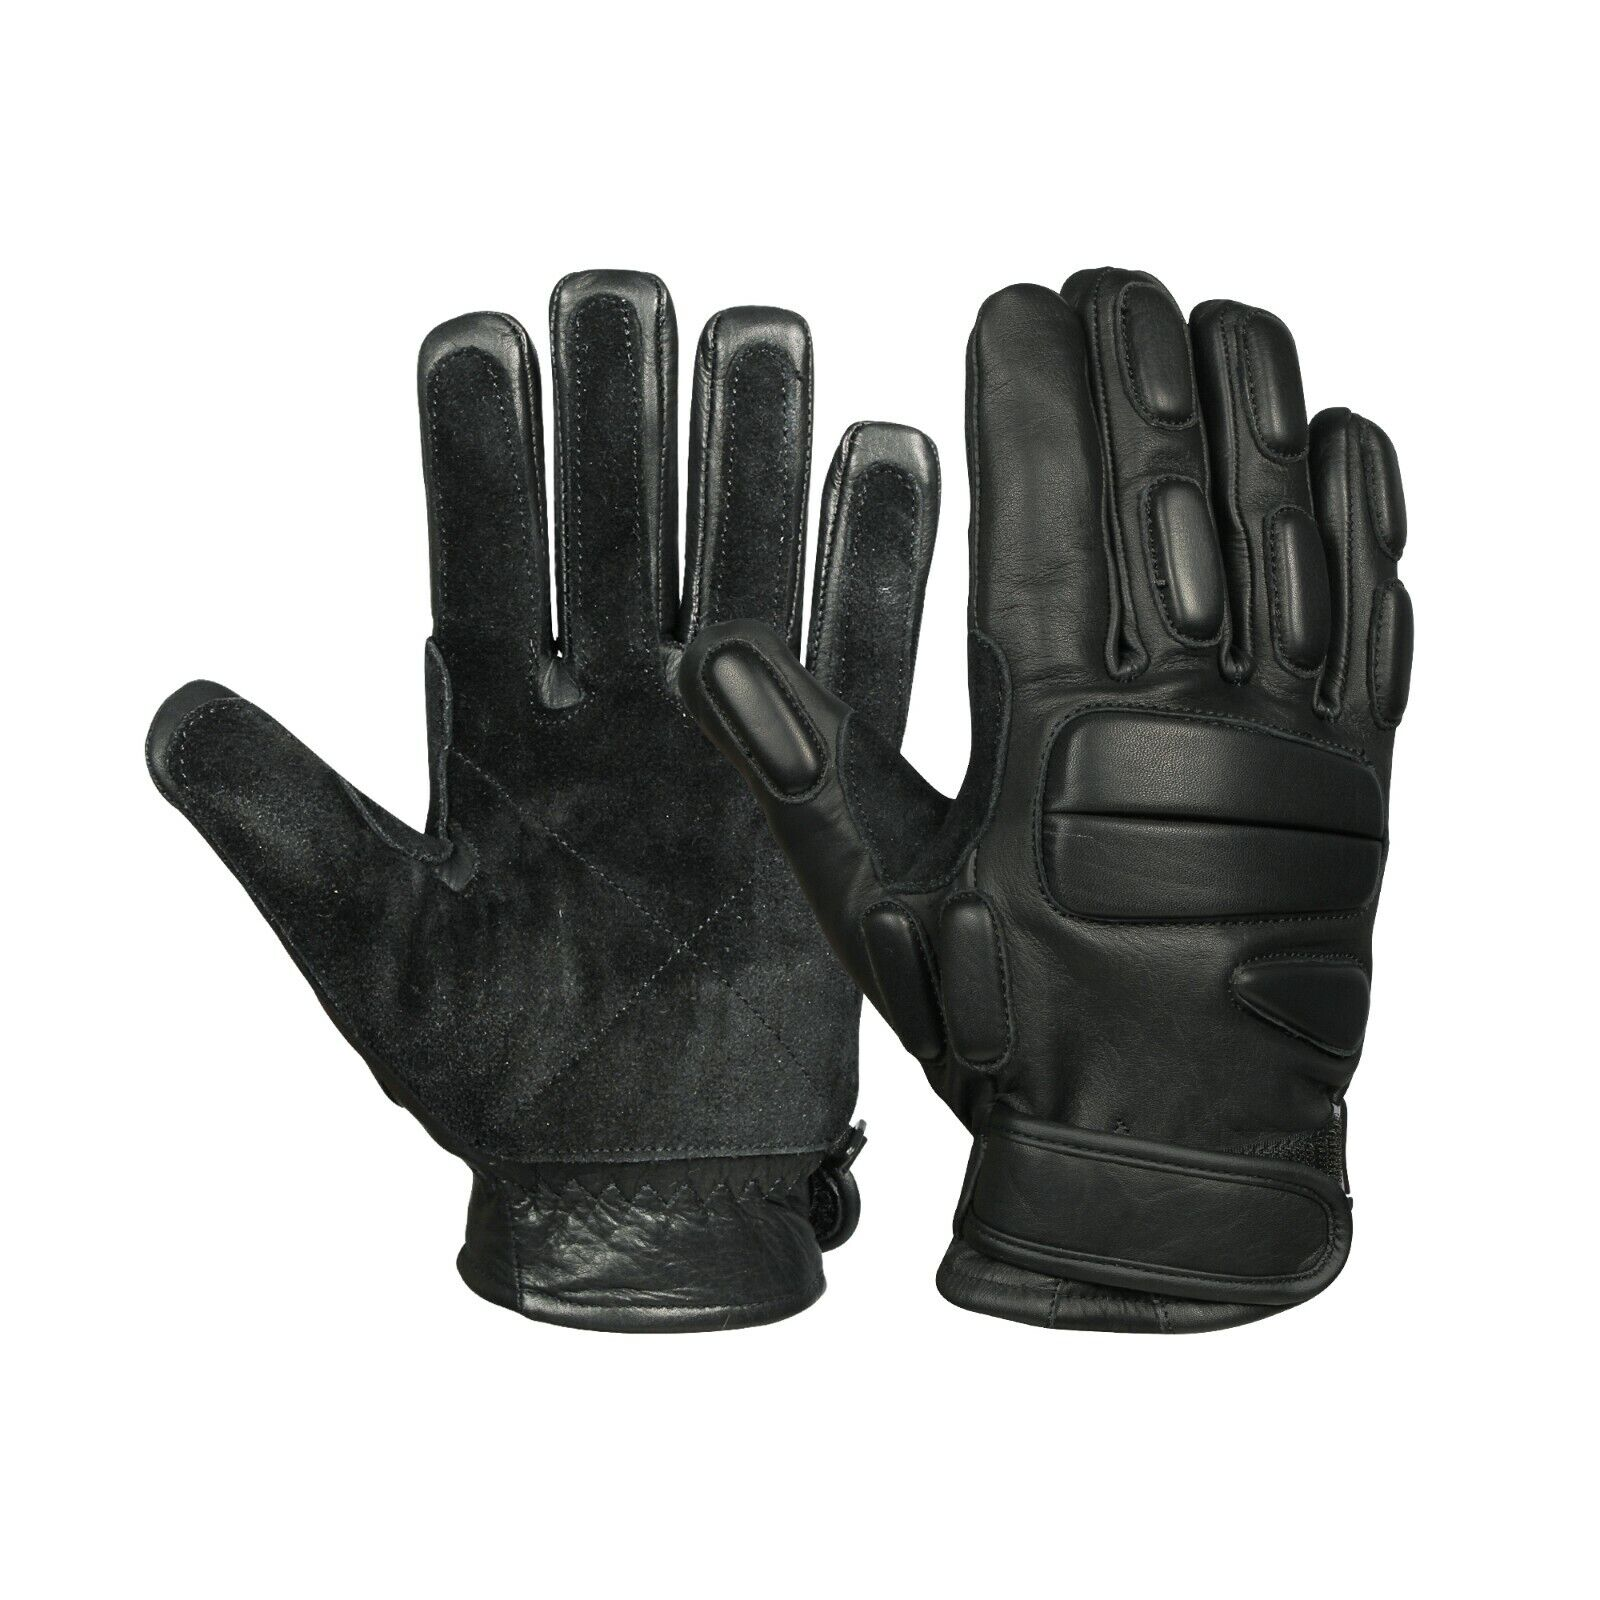 Motorbike Tactical Army Military Combat Airsoft Paintball Hunting Shooting Glove